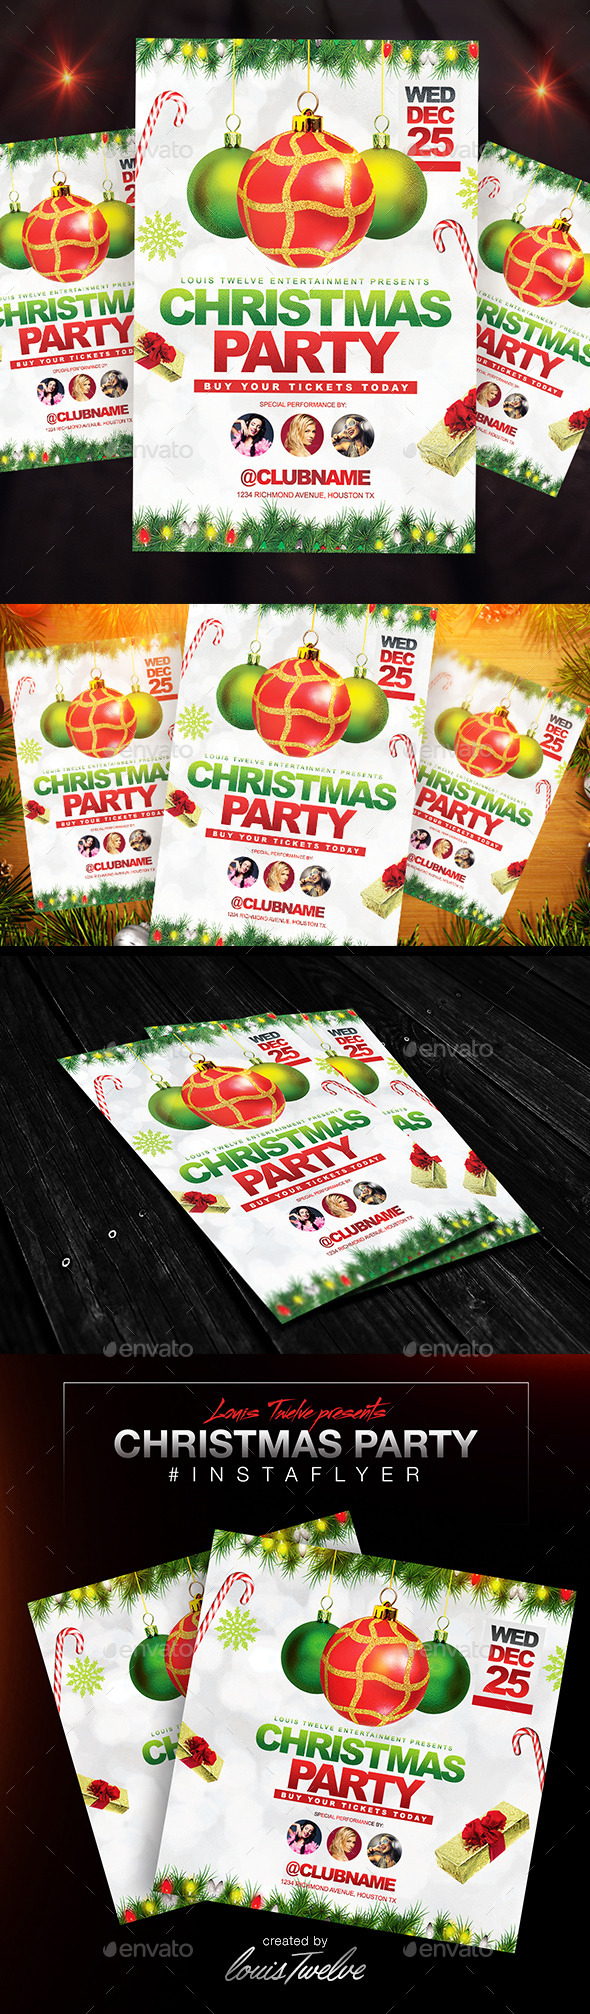 Christmas Party Flyer + Instapromo